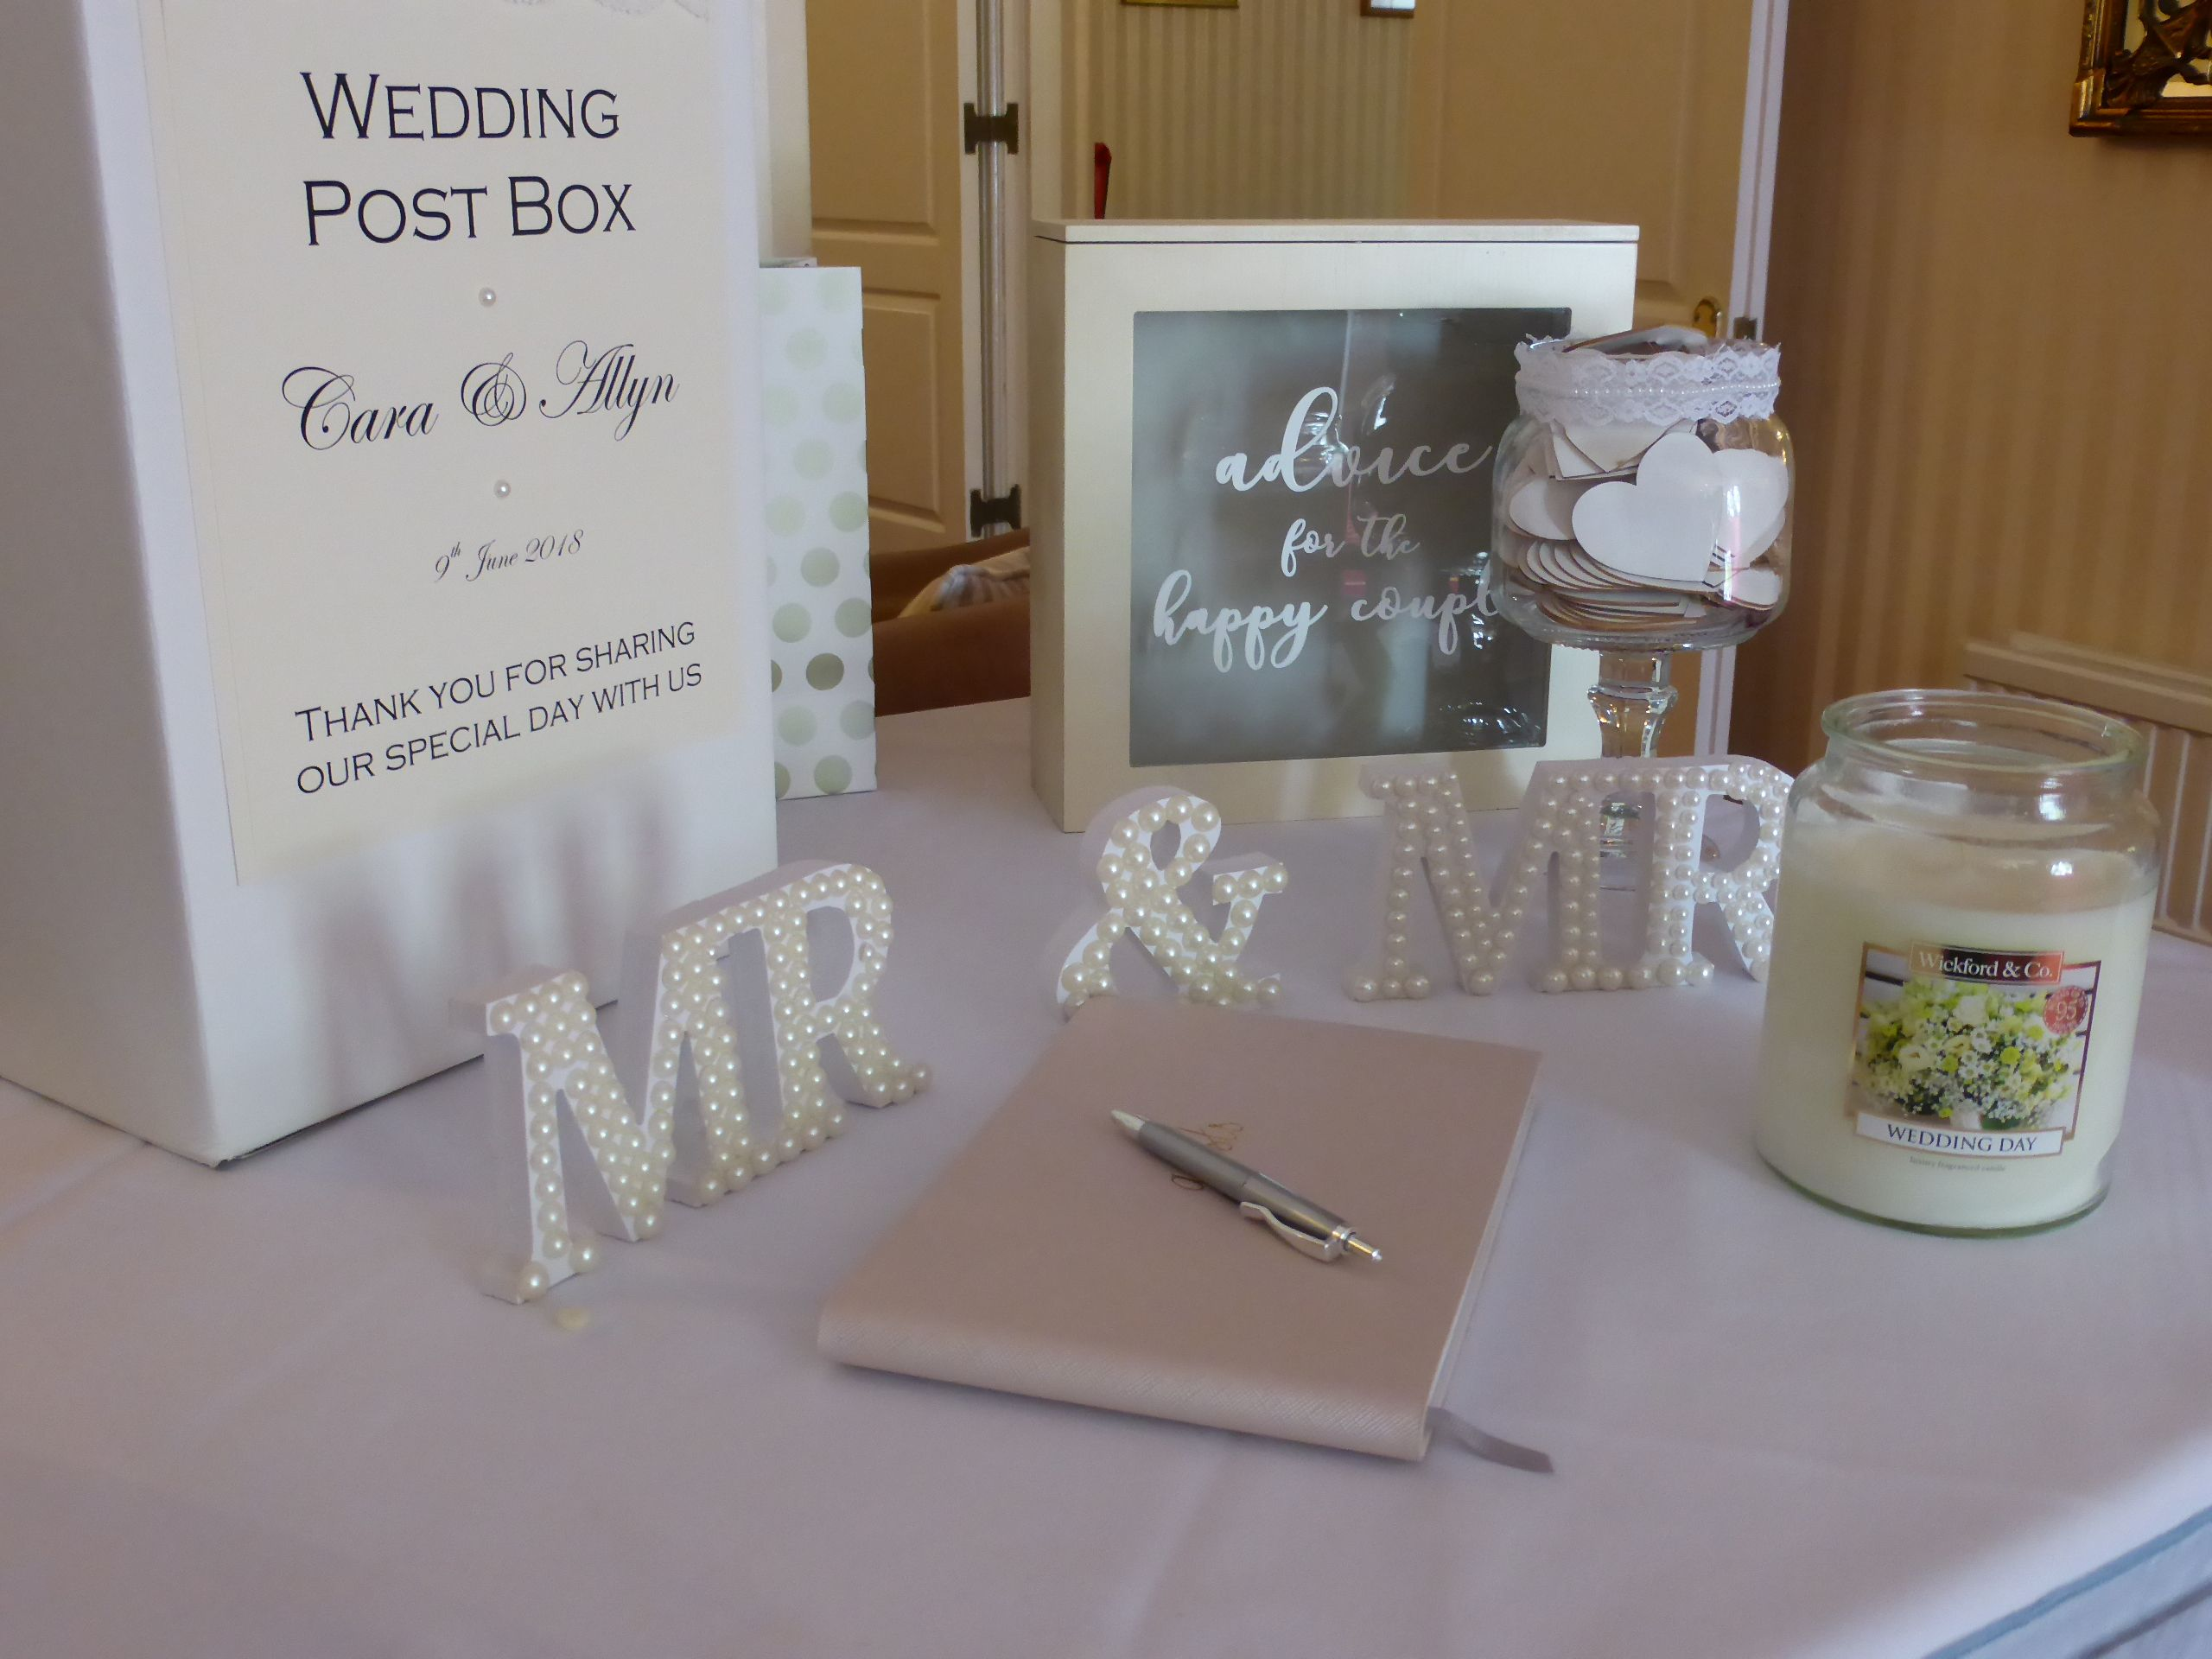 Wedding post box decorations  Wedding Post box guest book and gift table  wedding  Pinterest